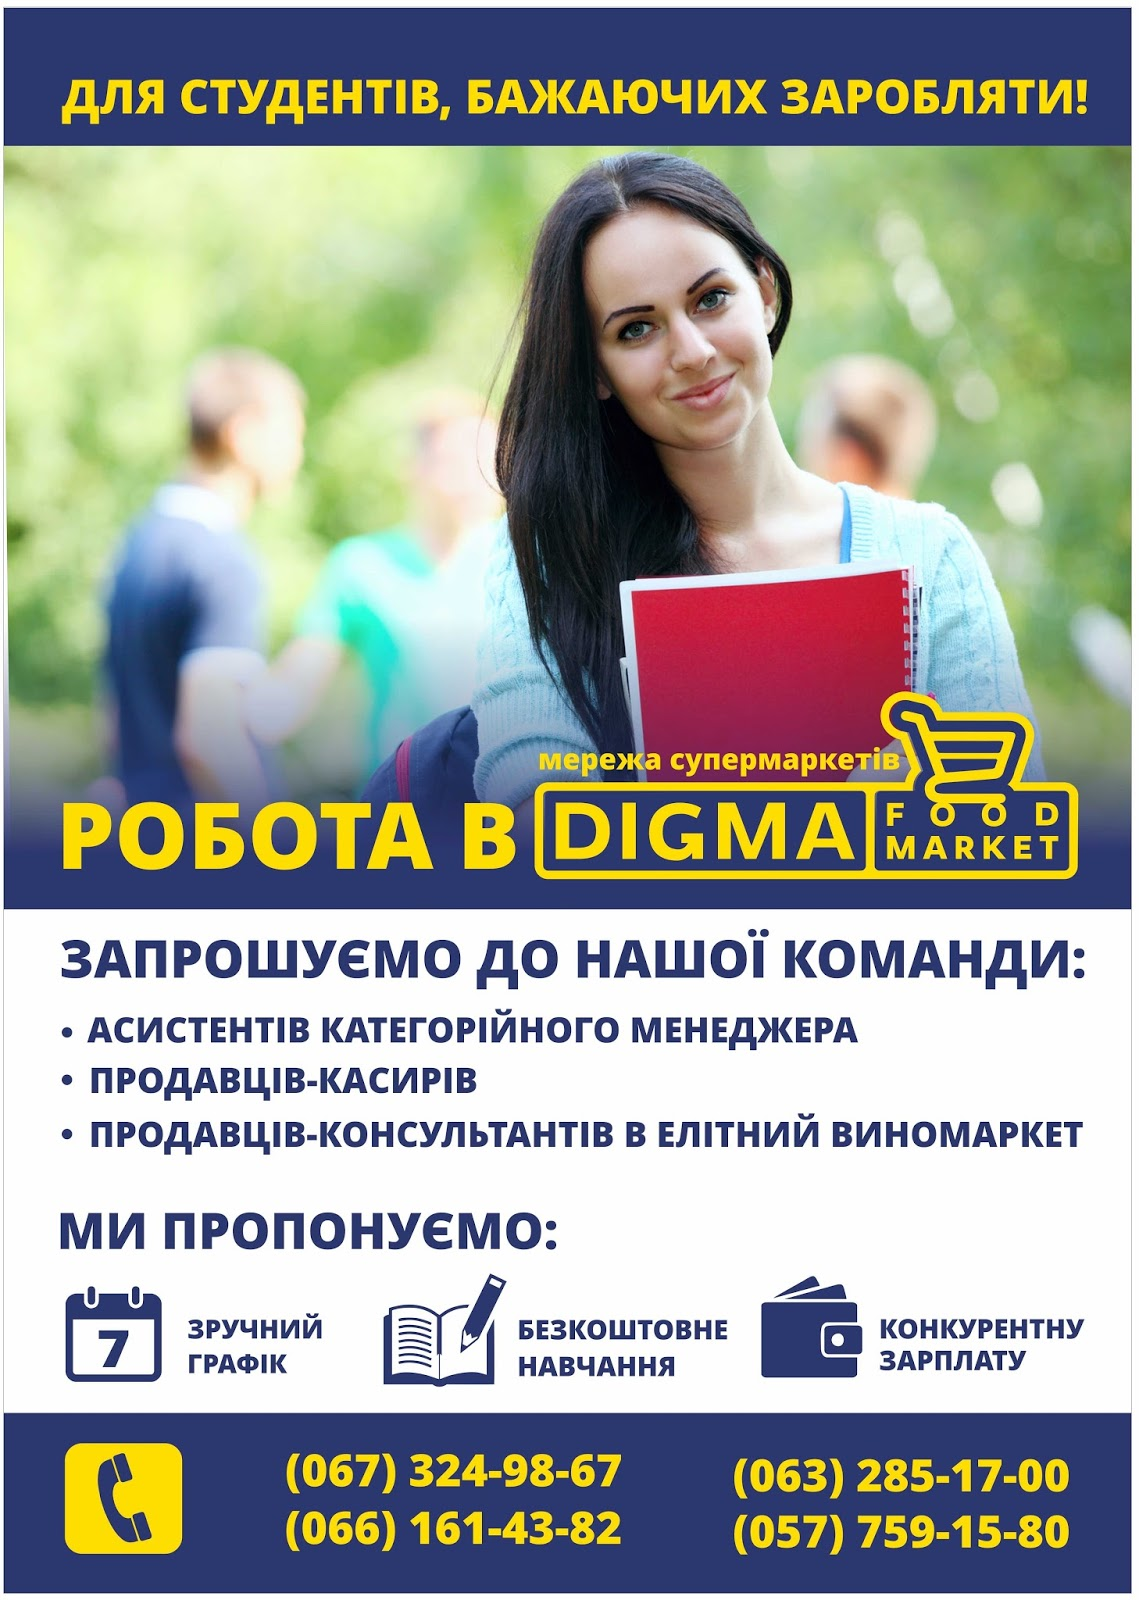 Робота у Digma Business Group